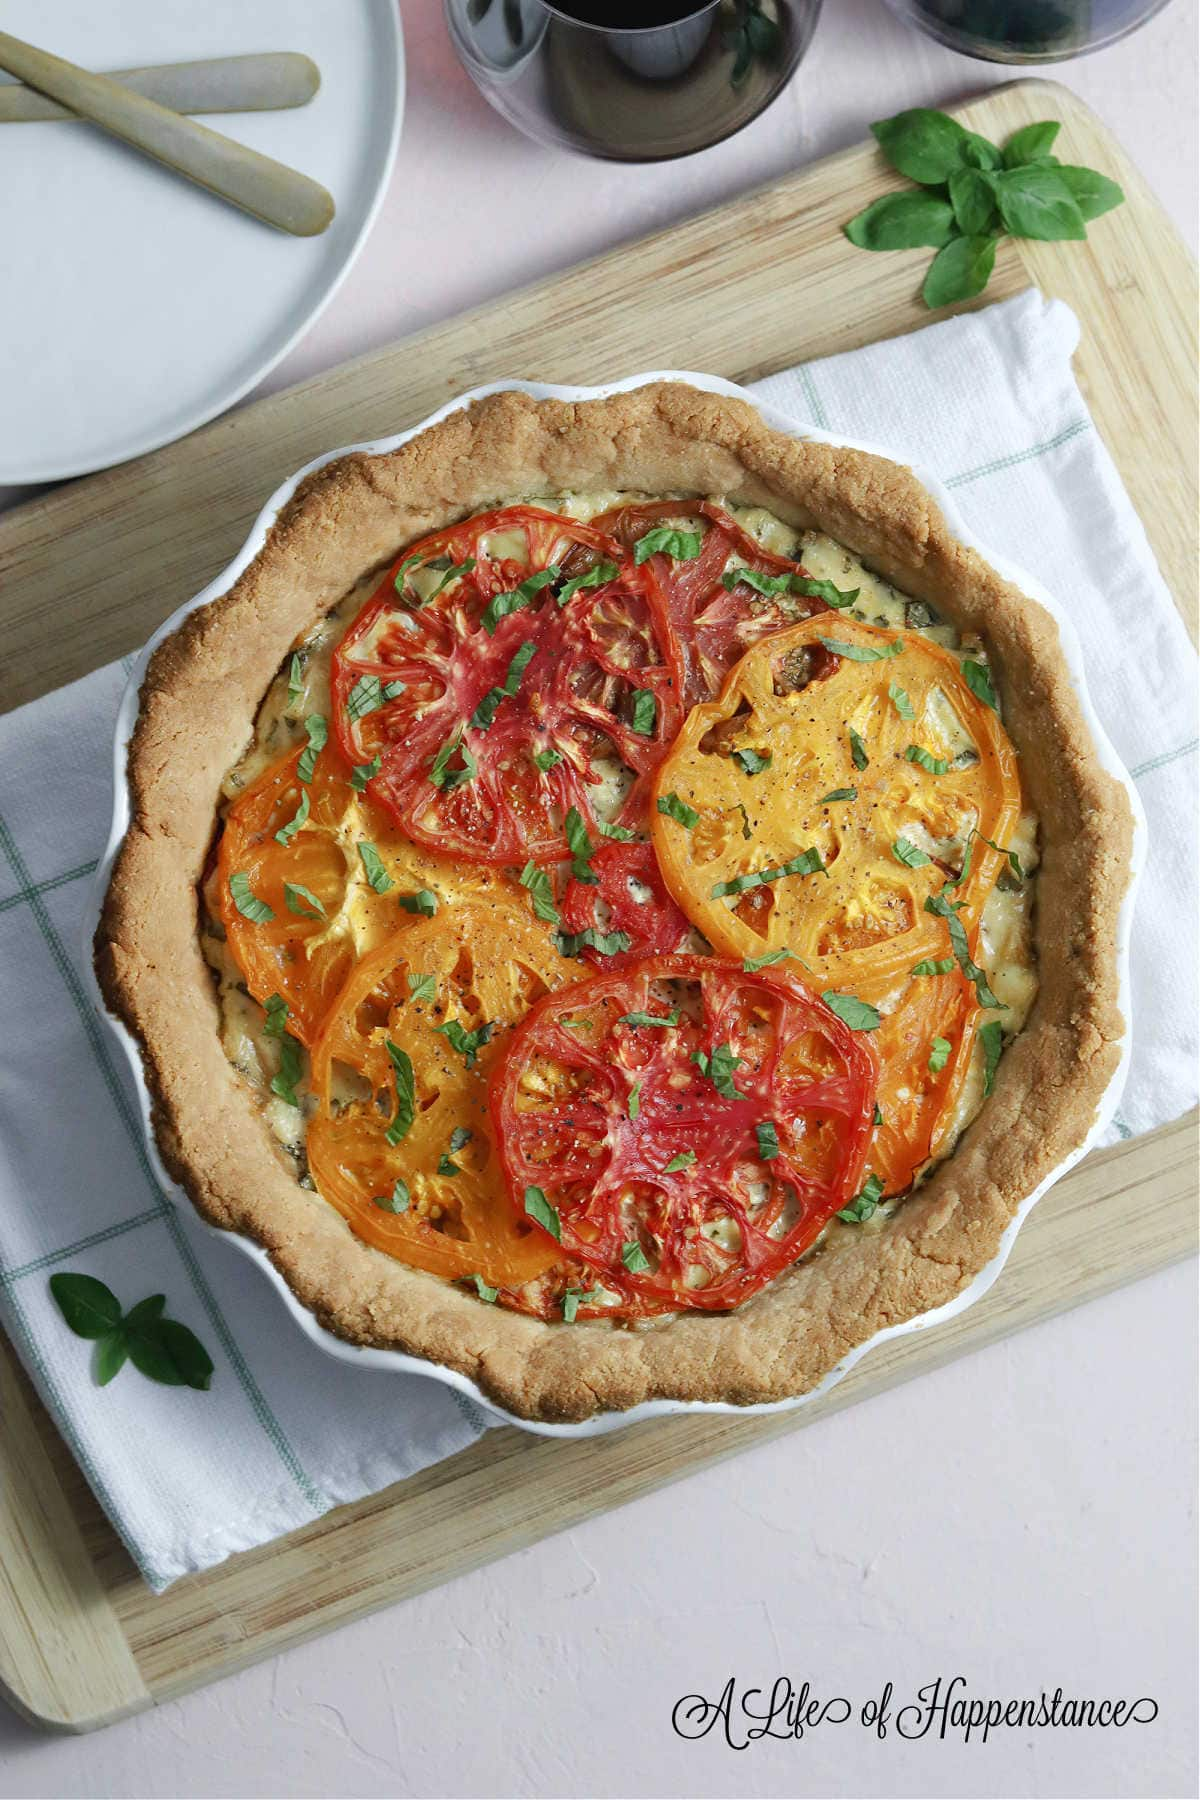 An overhead photo of the heirloom tomato pie recipe on a wooden cutting board surrounded by fresh basil leaves, two glasses of red wine, and a white plate.